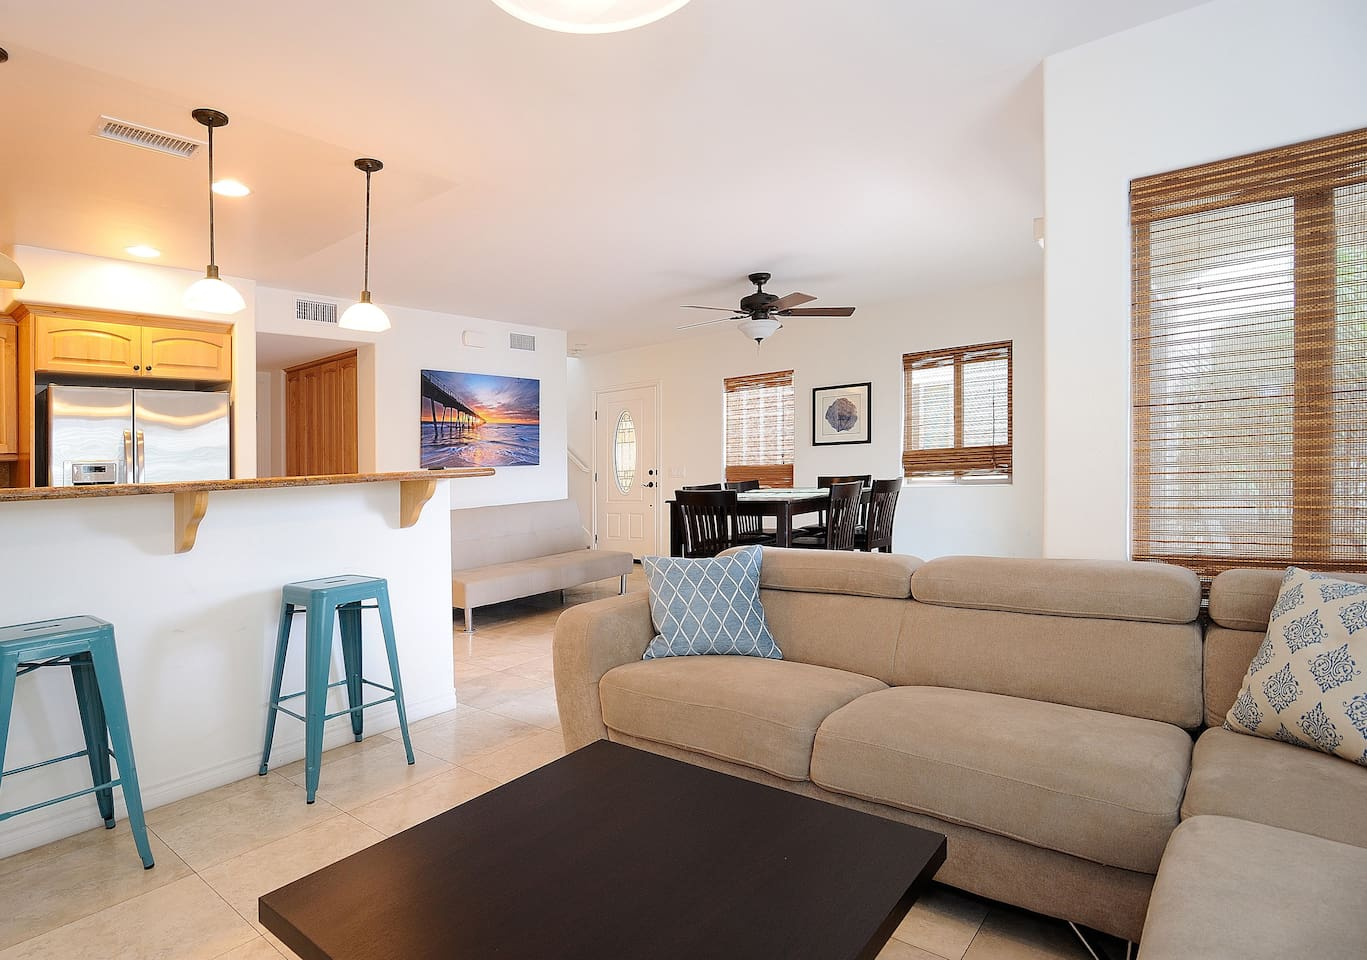 Beautiful open floor plan, perfect for entertaining or hanging with the family. **Please note, since this photo was taken we have replaced the sectional couch with an oversized armchair and a queen size sofa bed.